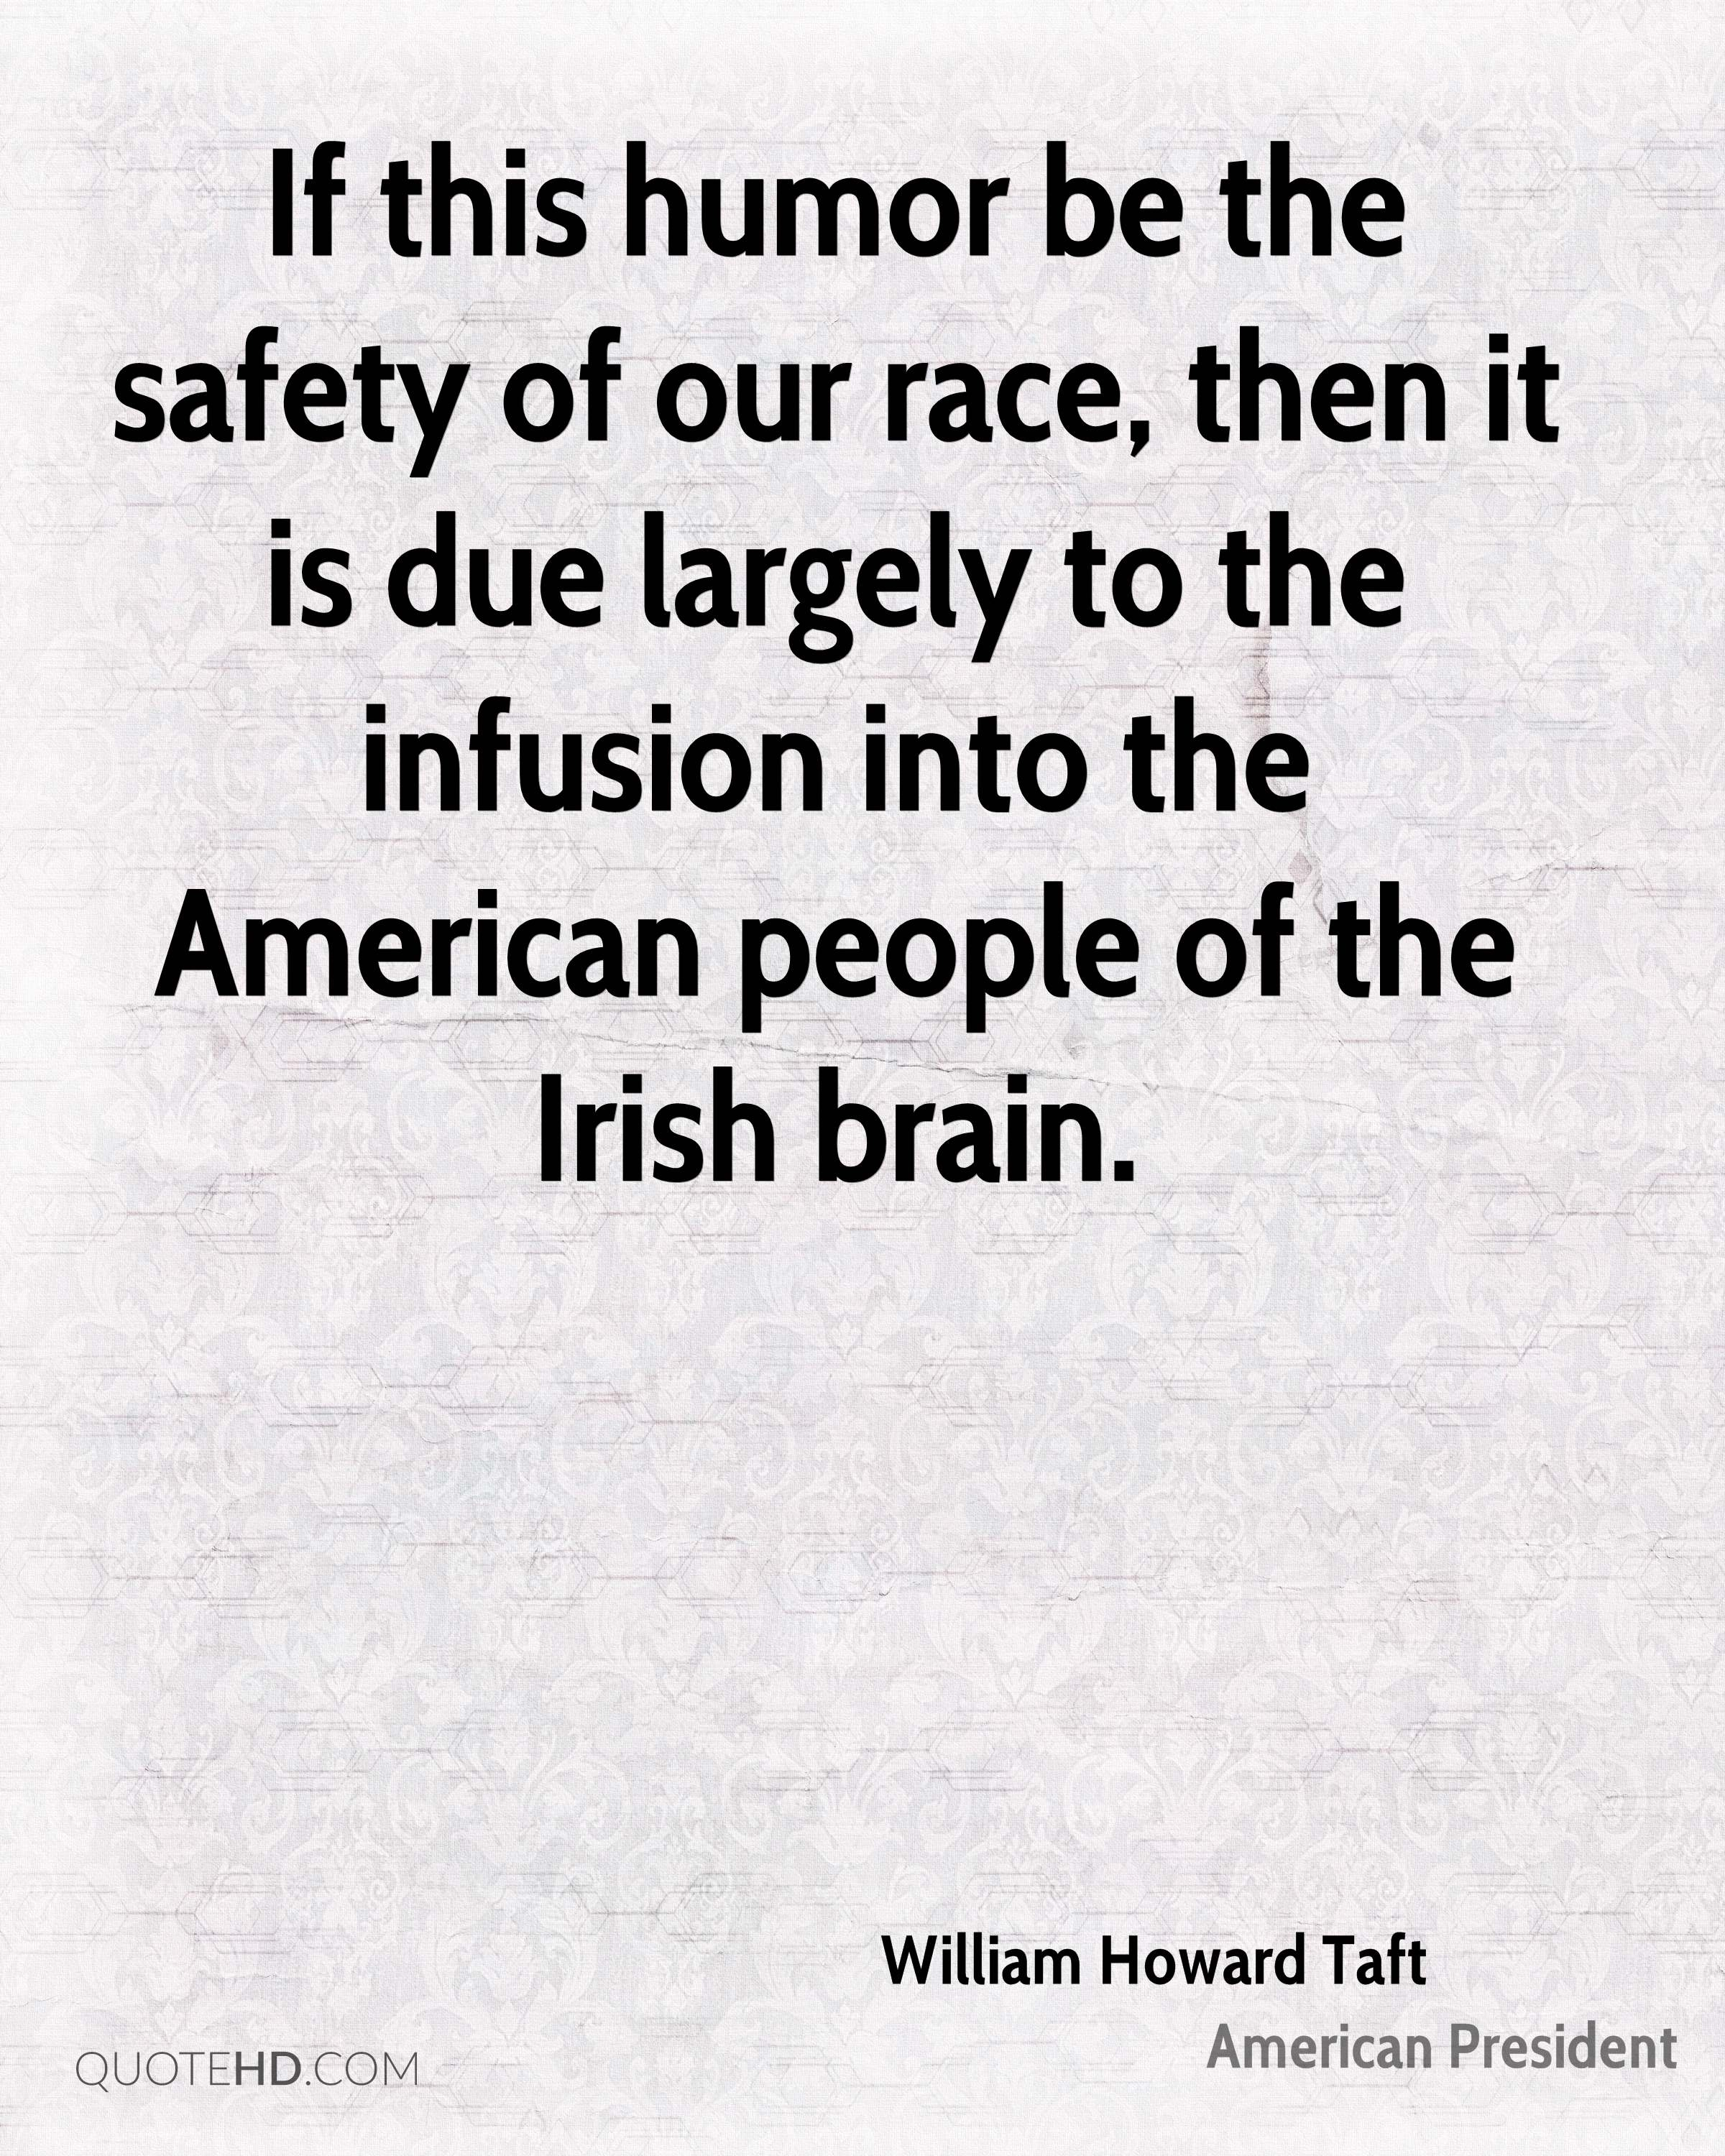 If this humor be the safety of our race, then it is due largely to the infusion into the American people of the Irish brain.